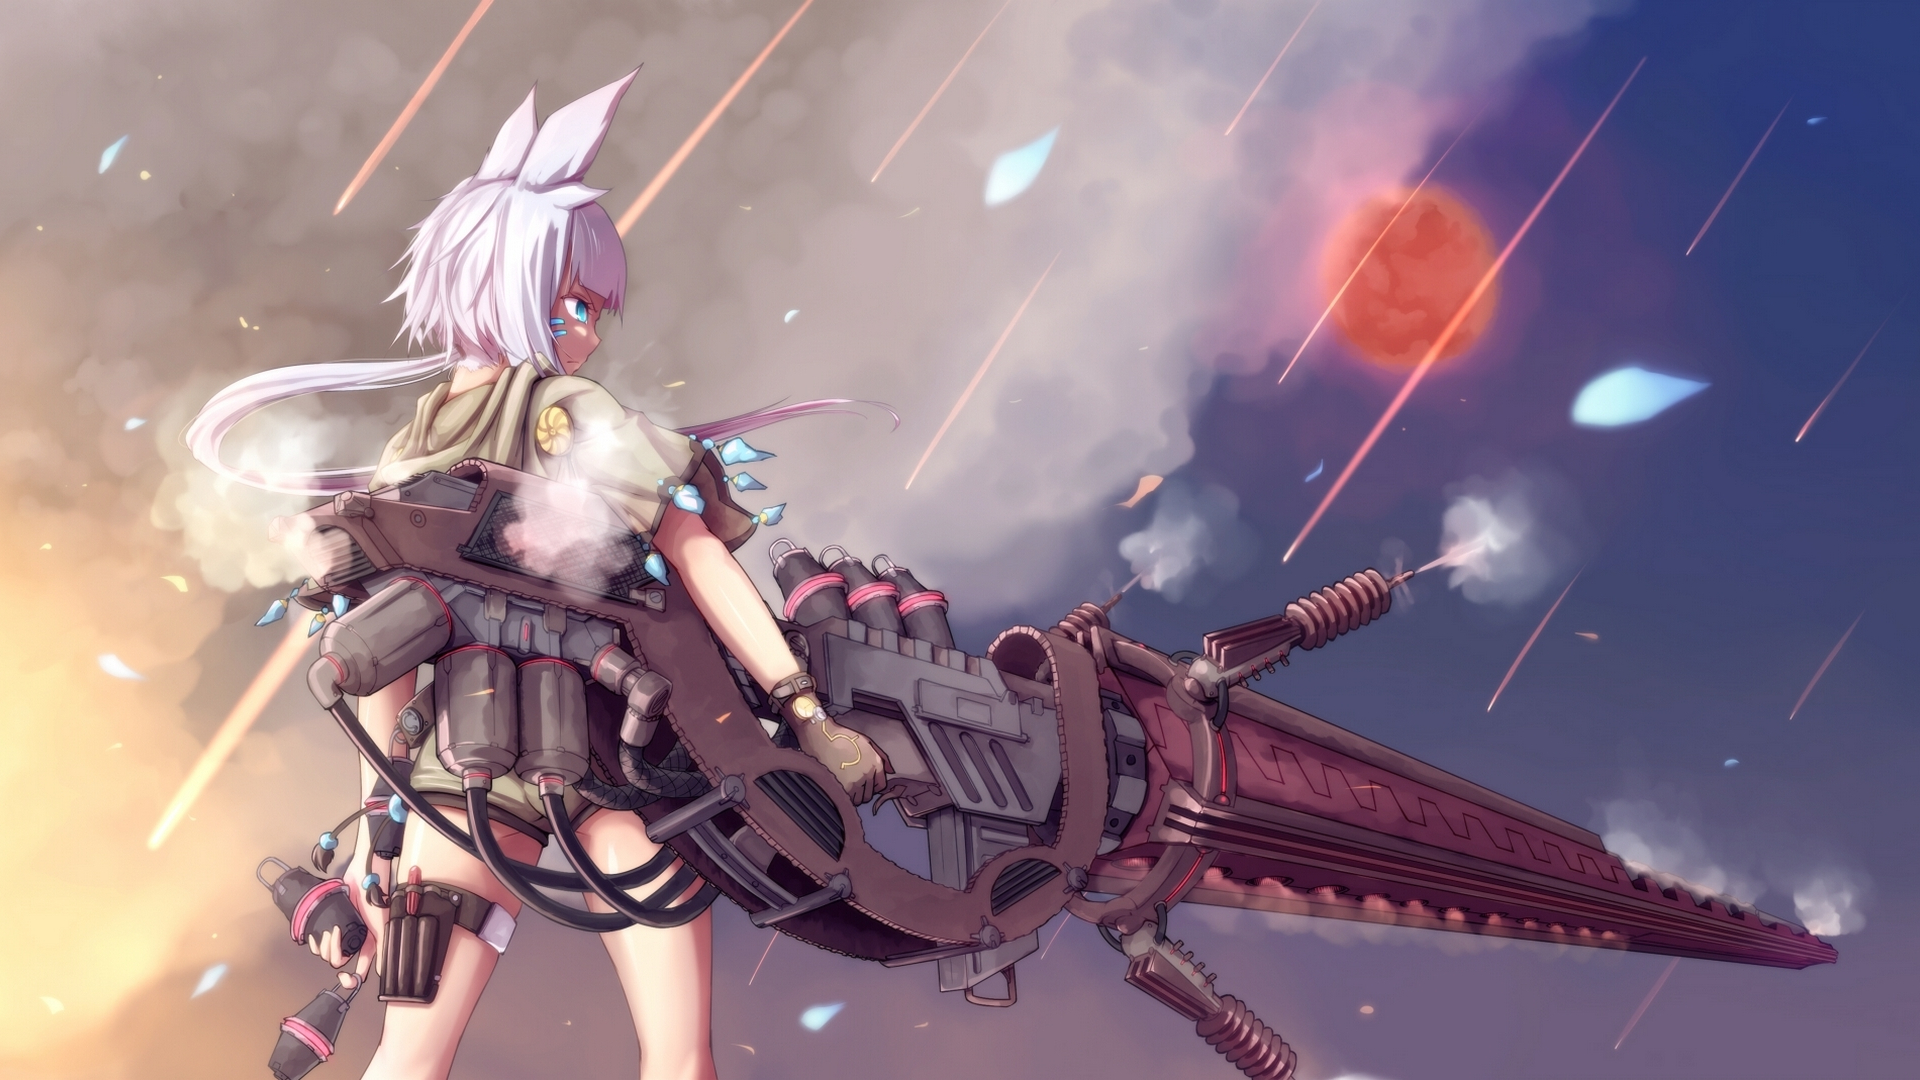 Anime girl hd wallpaper background image 1920x1080 - Anime girl with weapon ...